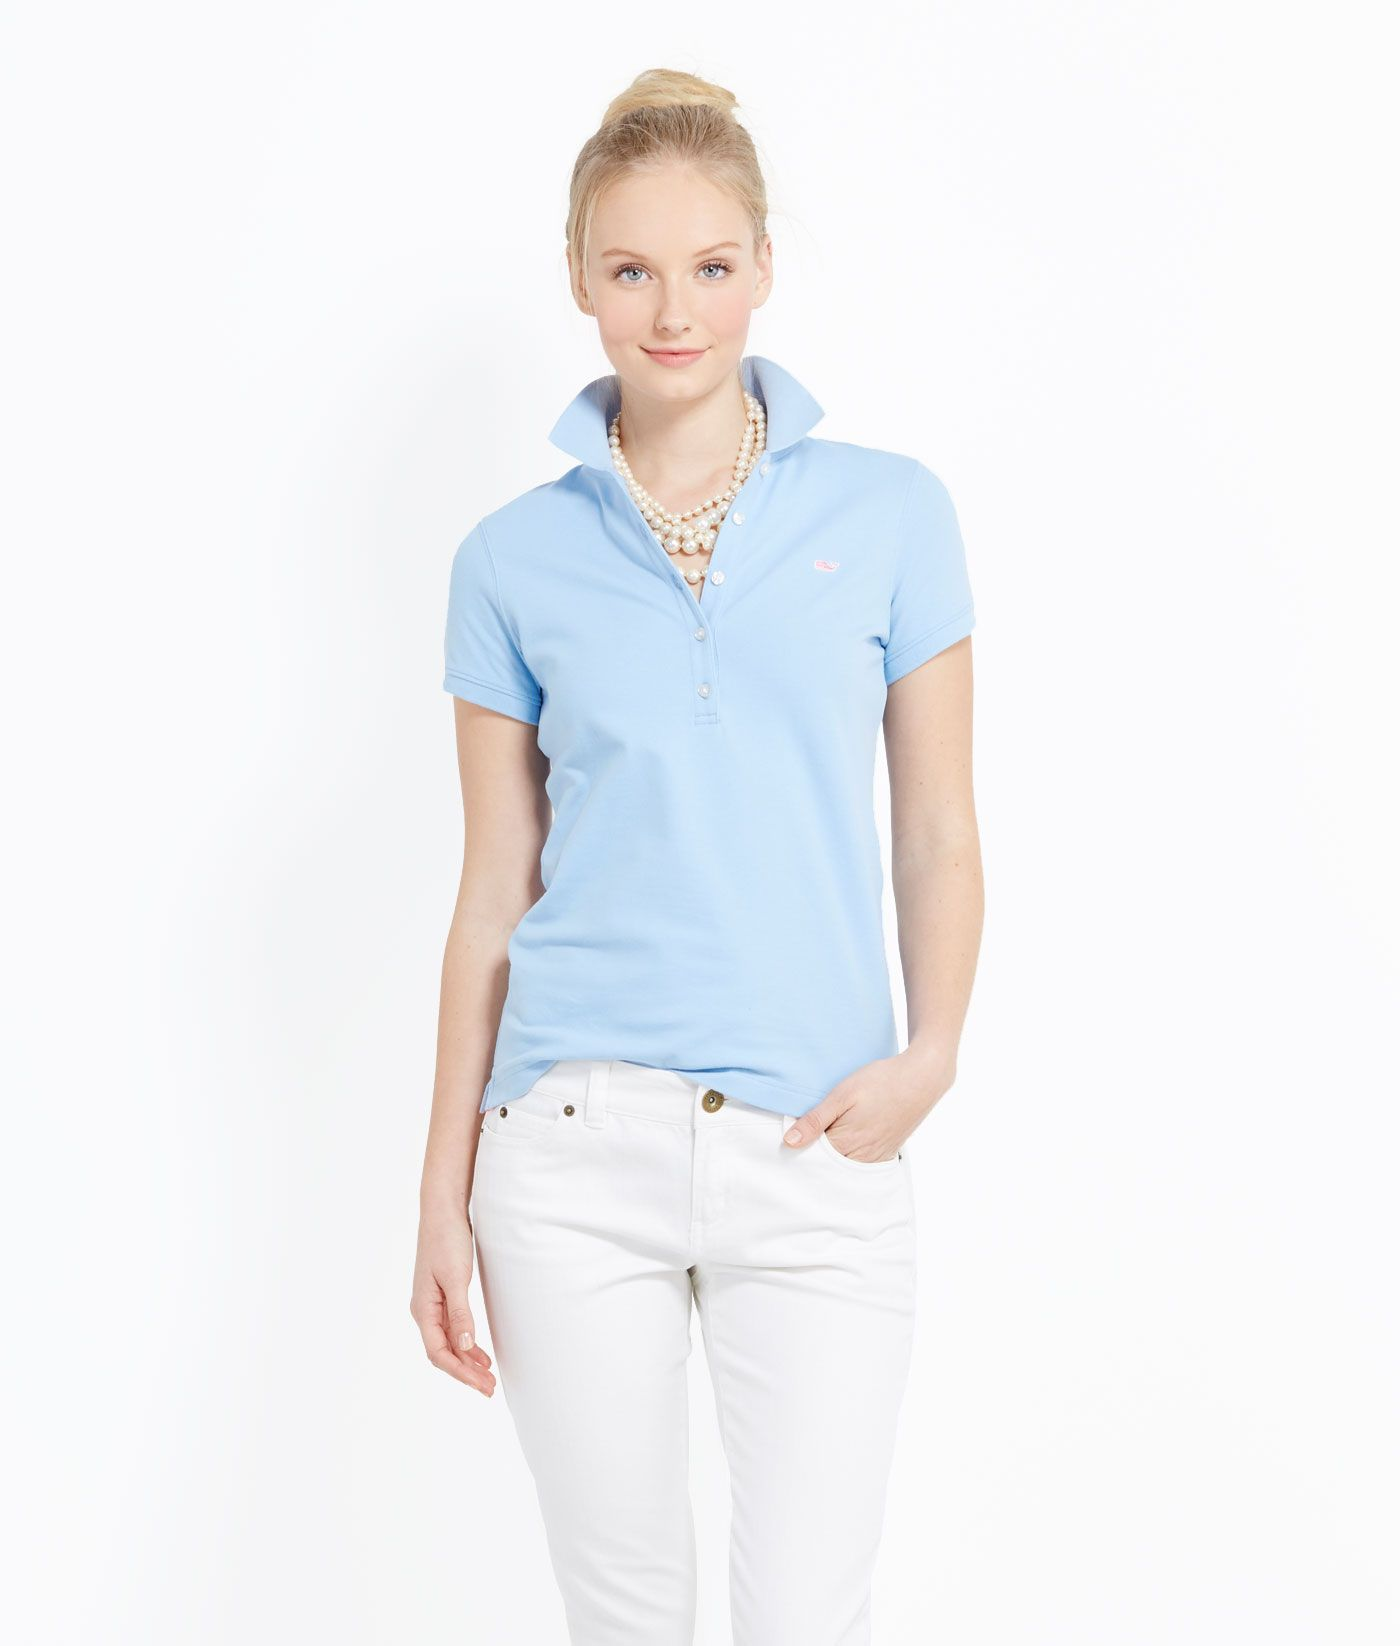 Womens Polo Shirts Shoreline Short Sleeve Polo For Women